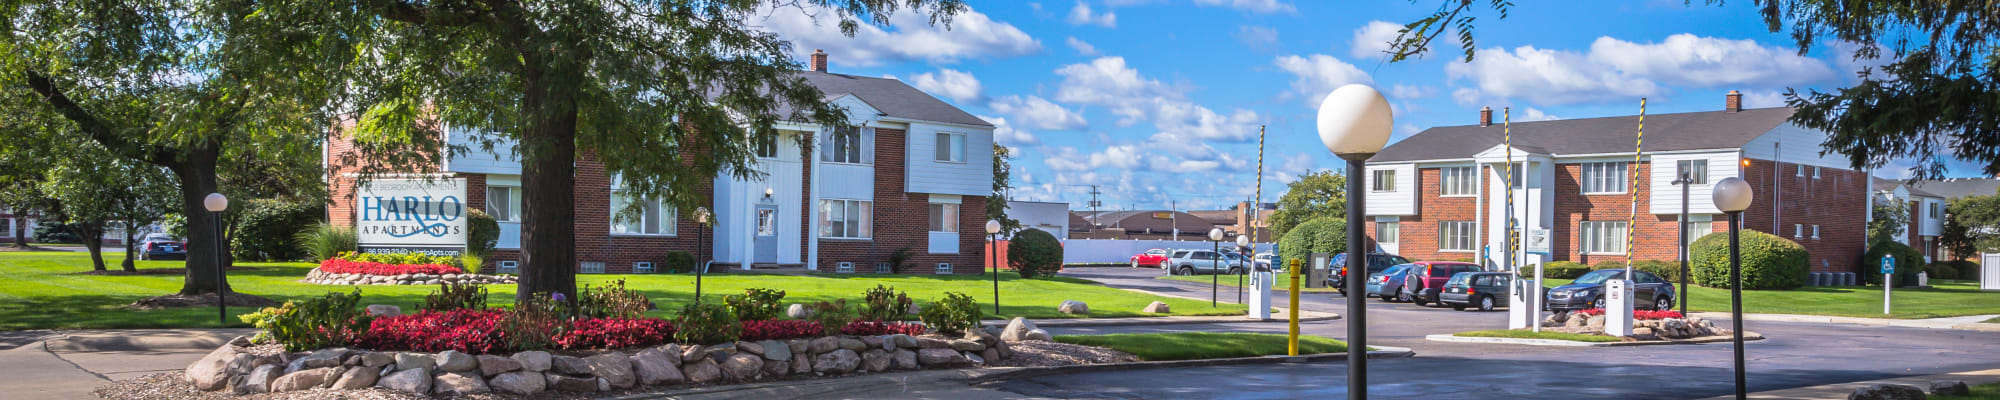 Amenities at Harlo Apartments in Warren, Michigan